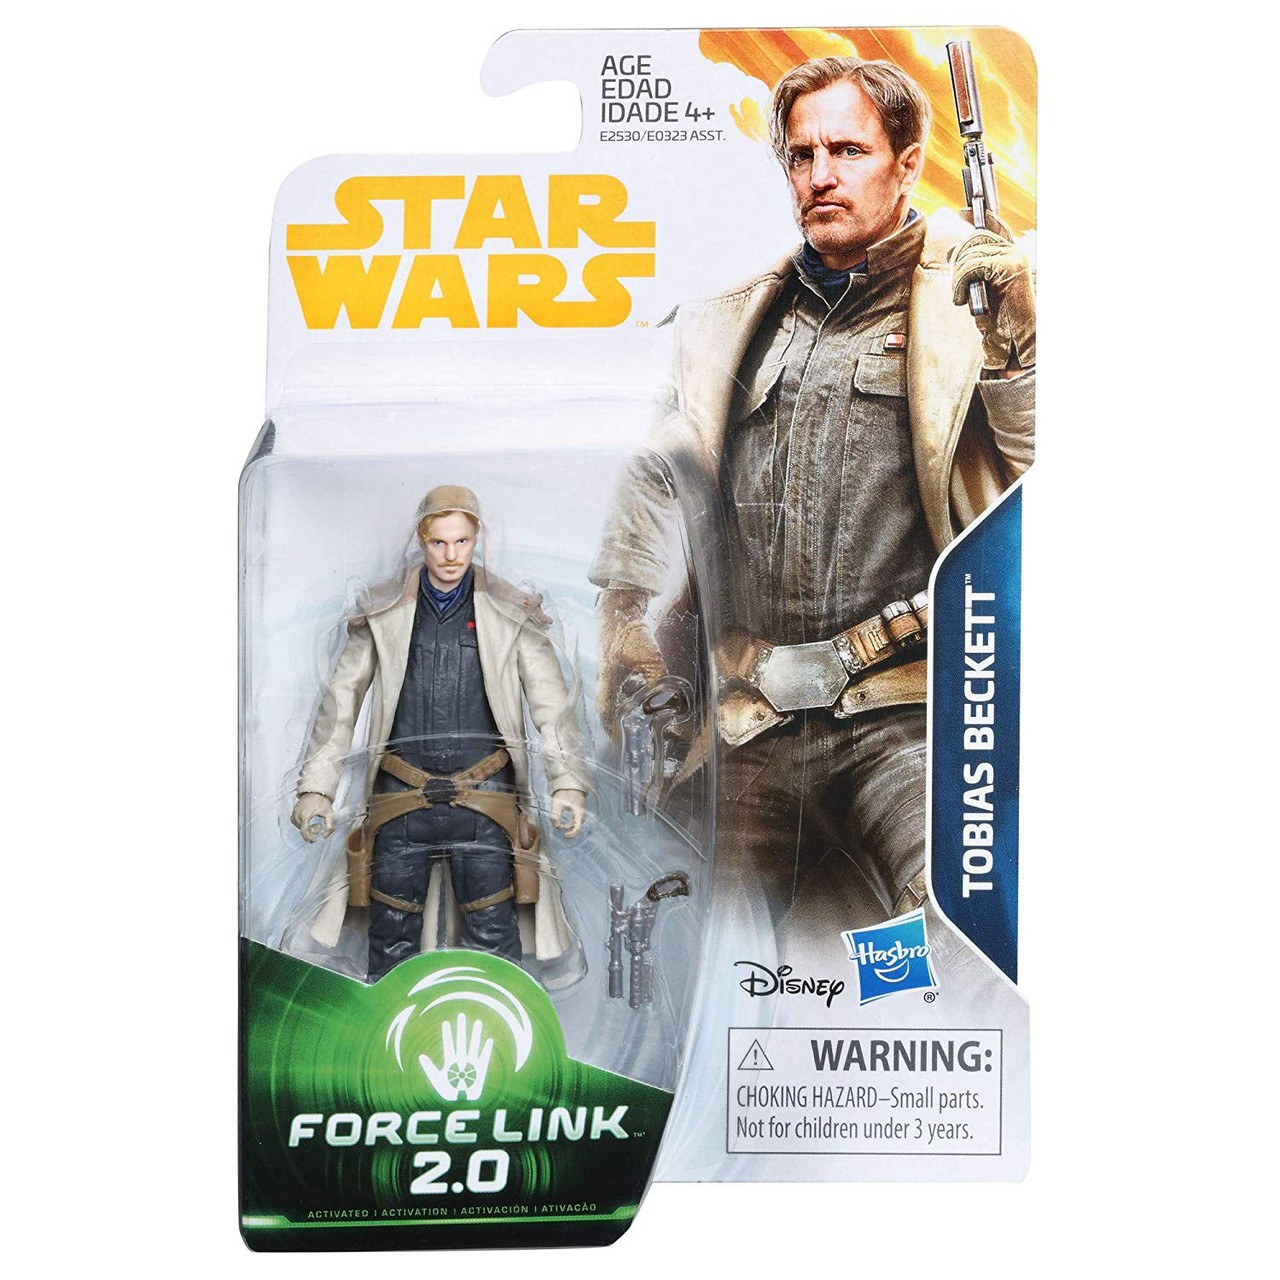 Solo Star Wars Histoire Force Link 2.0 Tobias Beckett Action Figure